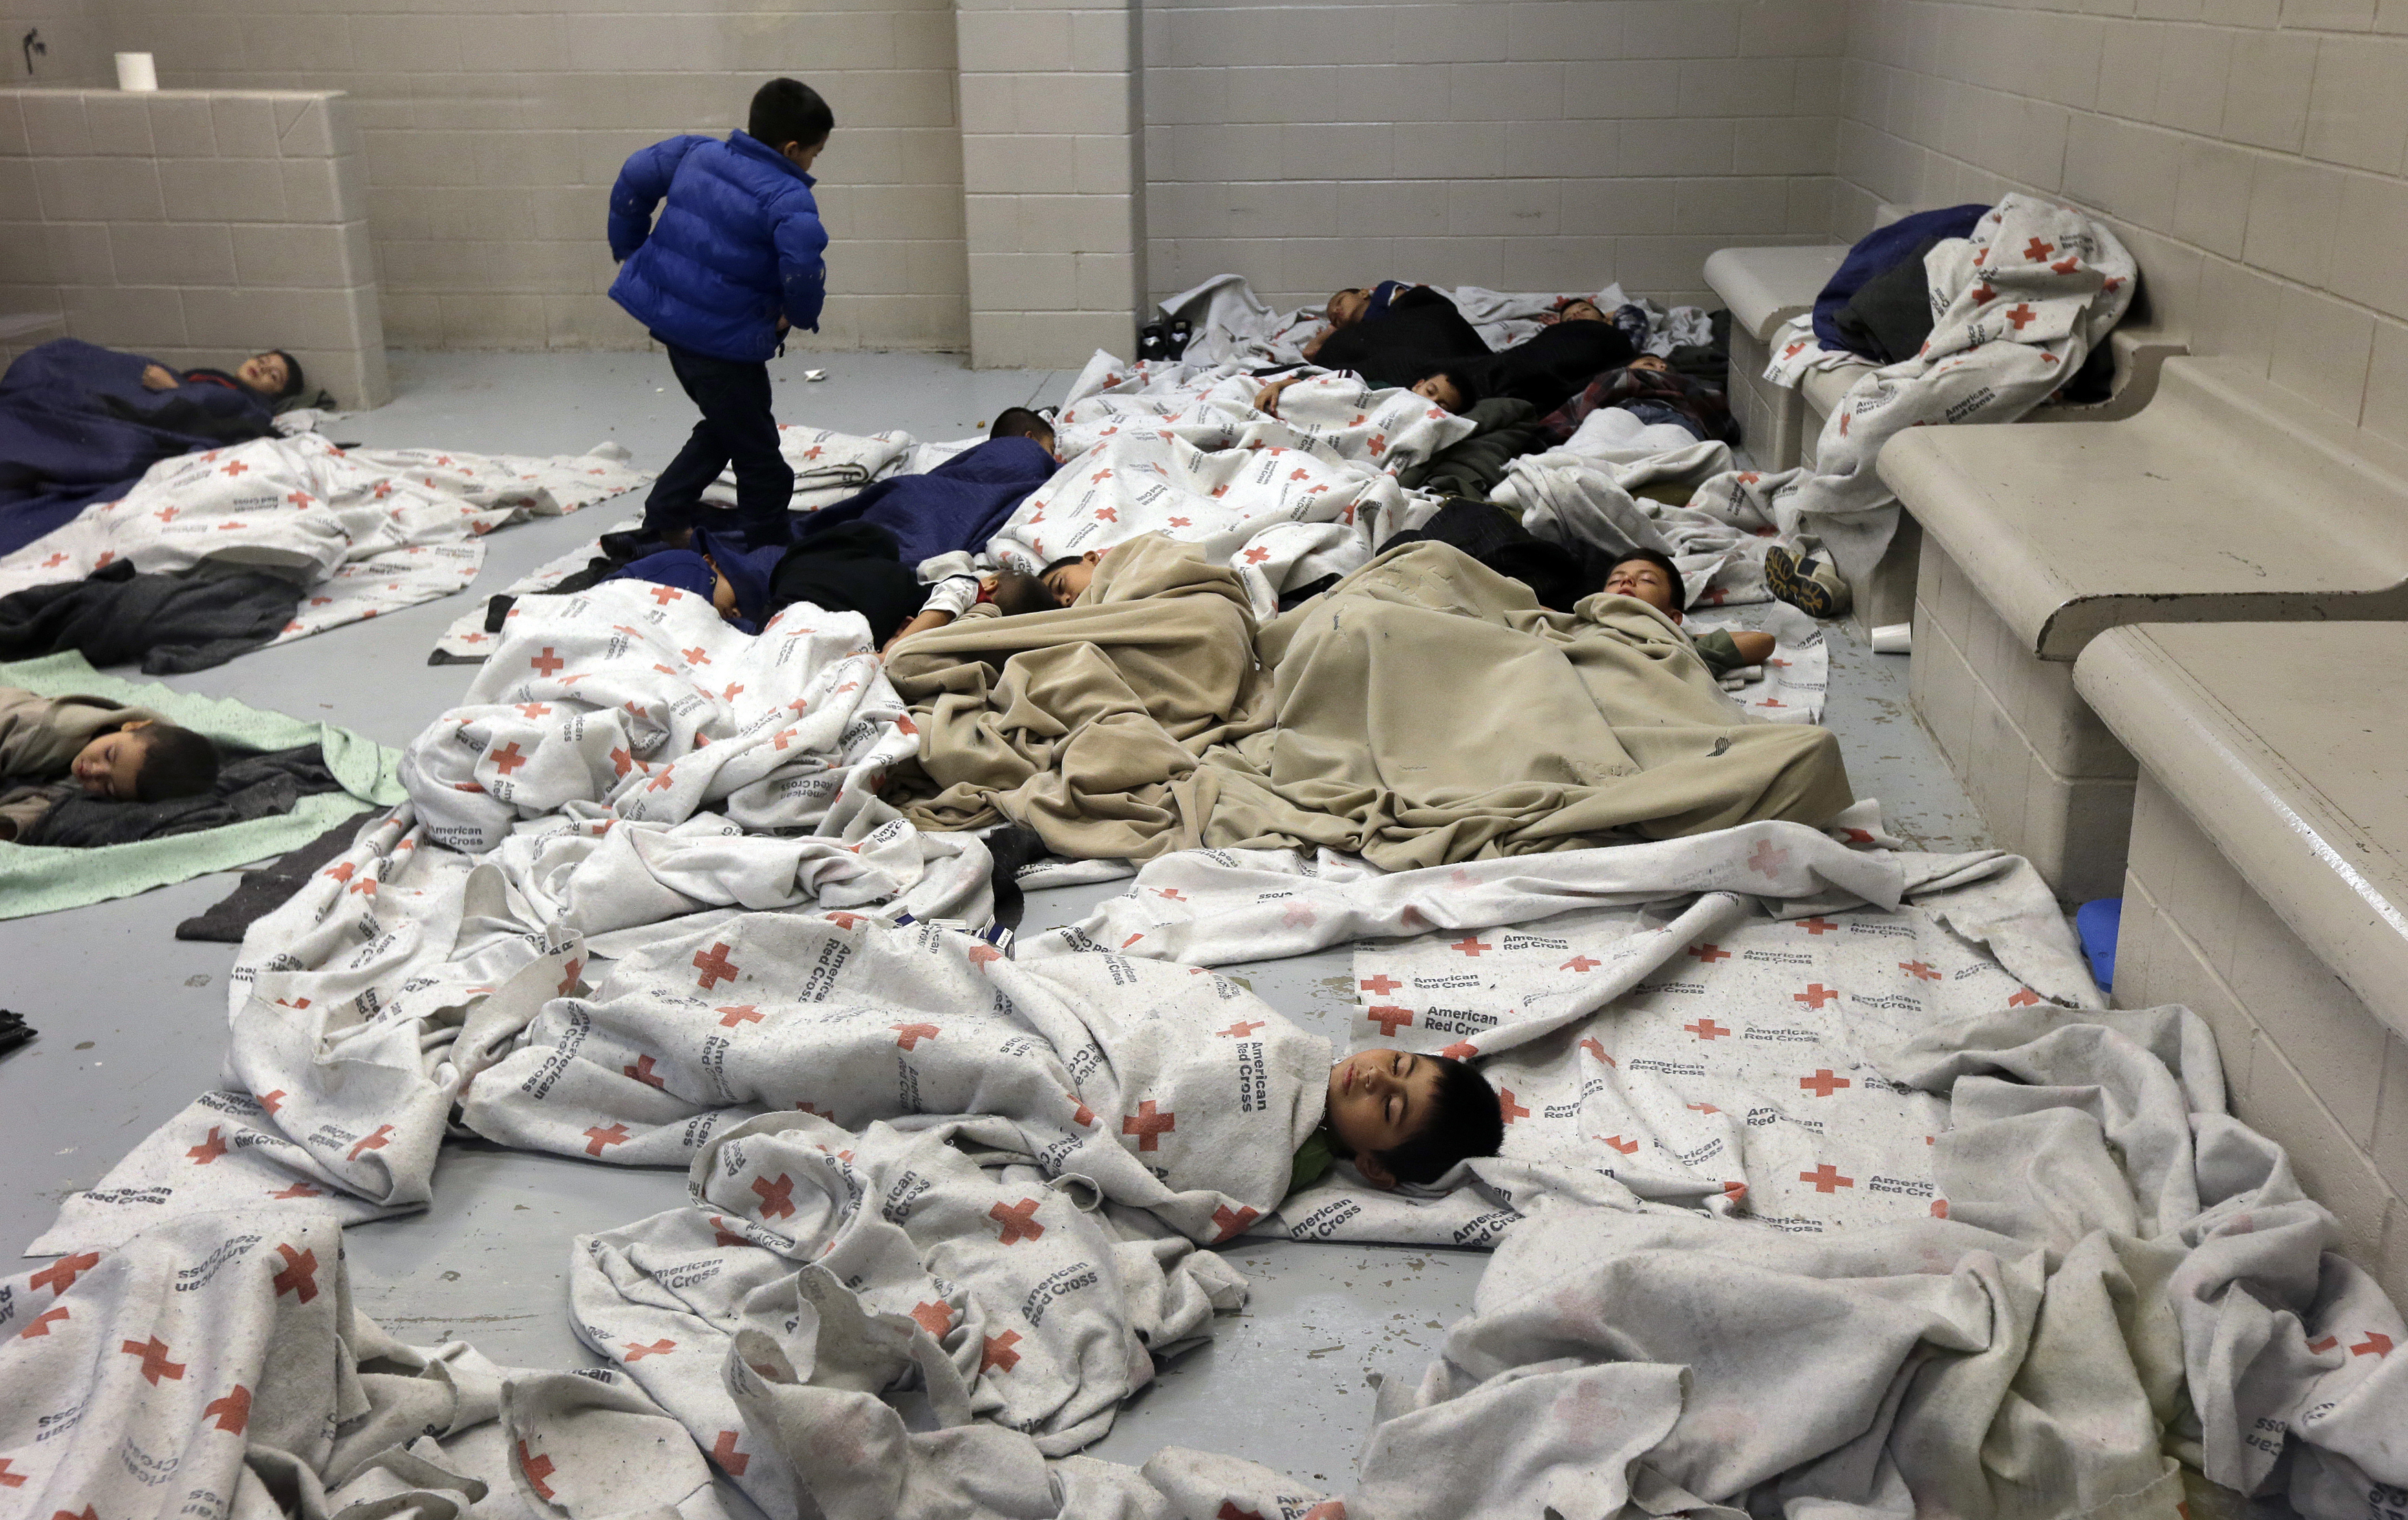 pemDetainees-sleep-in-a-holding-cell-at-a-US-Customs-and-Border-Protection-processing-facility-in-Brownsville-Texas-ReutersEric-GayPoolemp